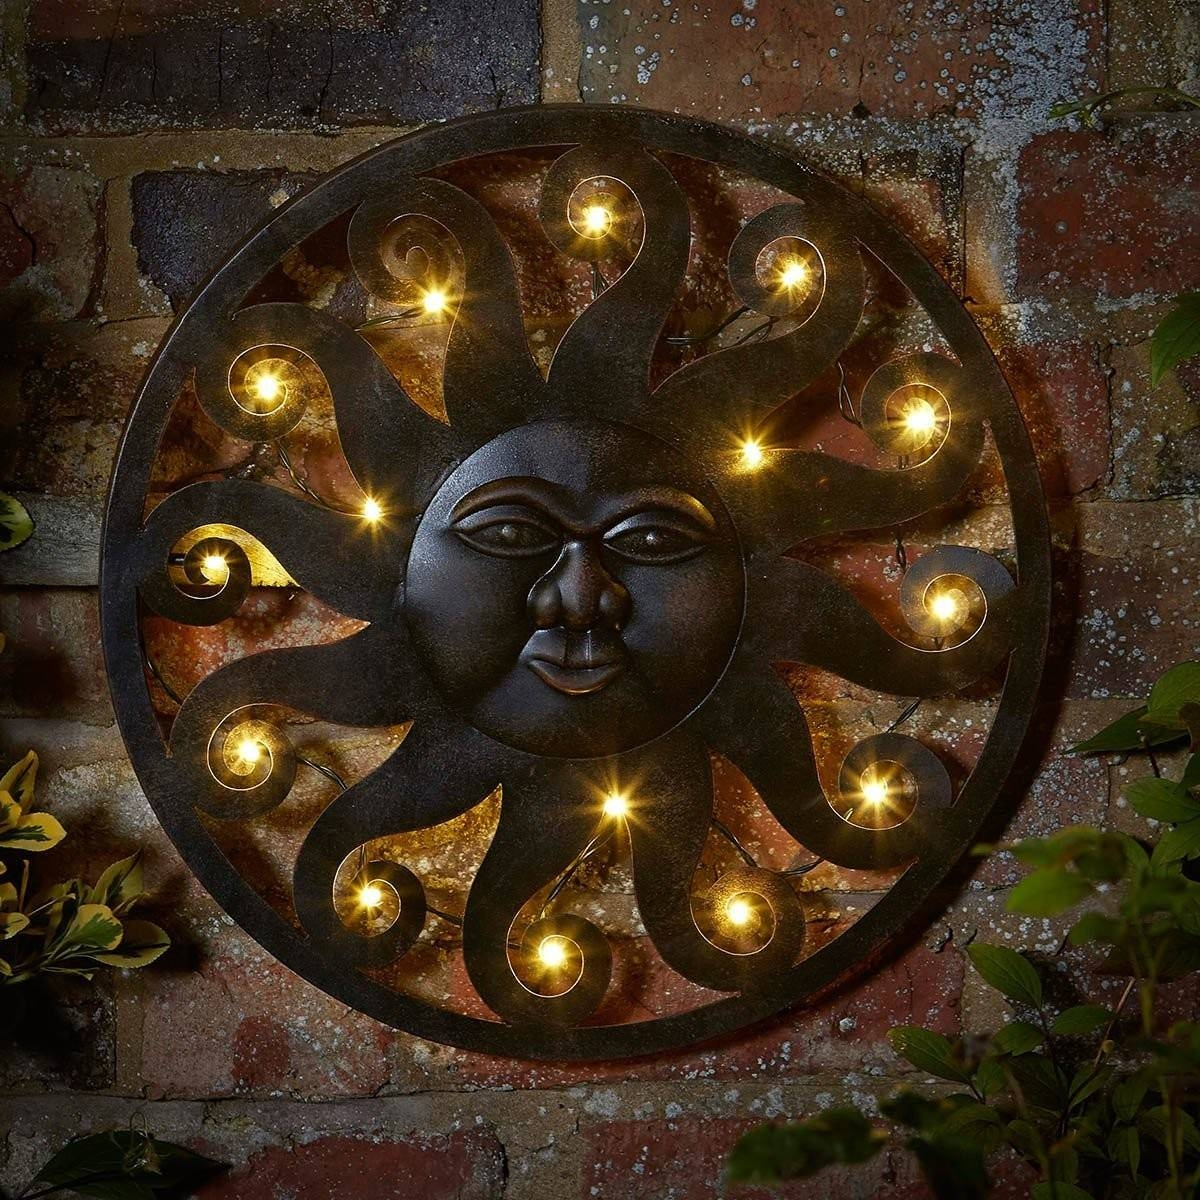 Large Outdoor Metal Wall Art Outdoor Garden Wall Art Outdoor Paint With Regard To Most Up To Date Metal Wall Art For Gardens (View 7 of 20)